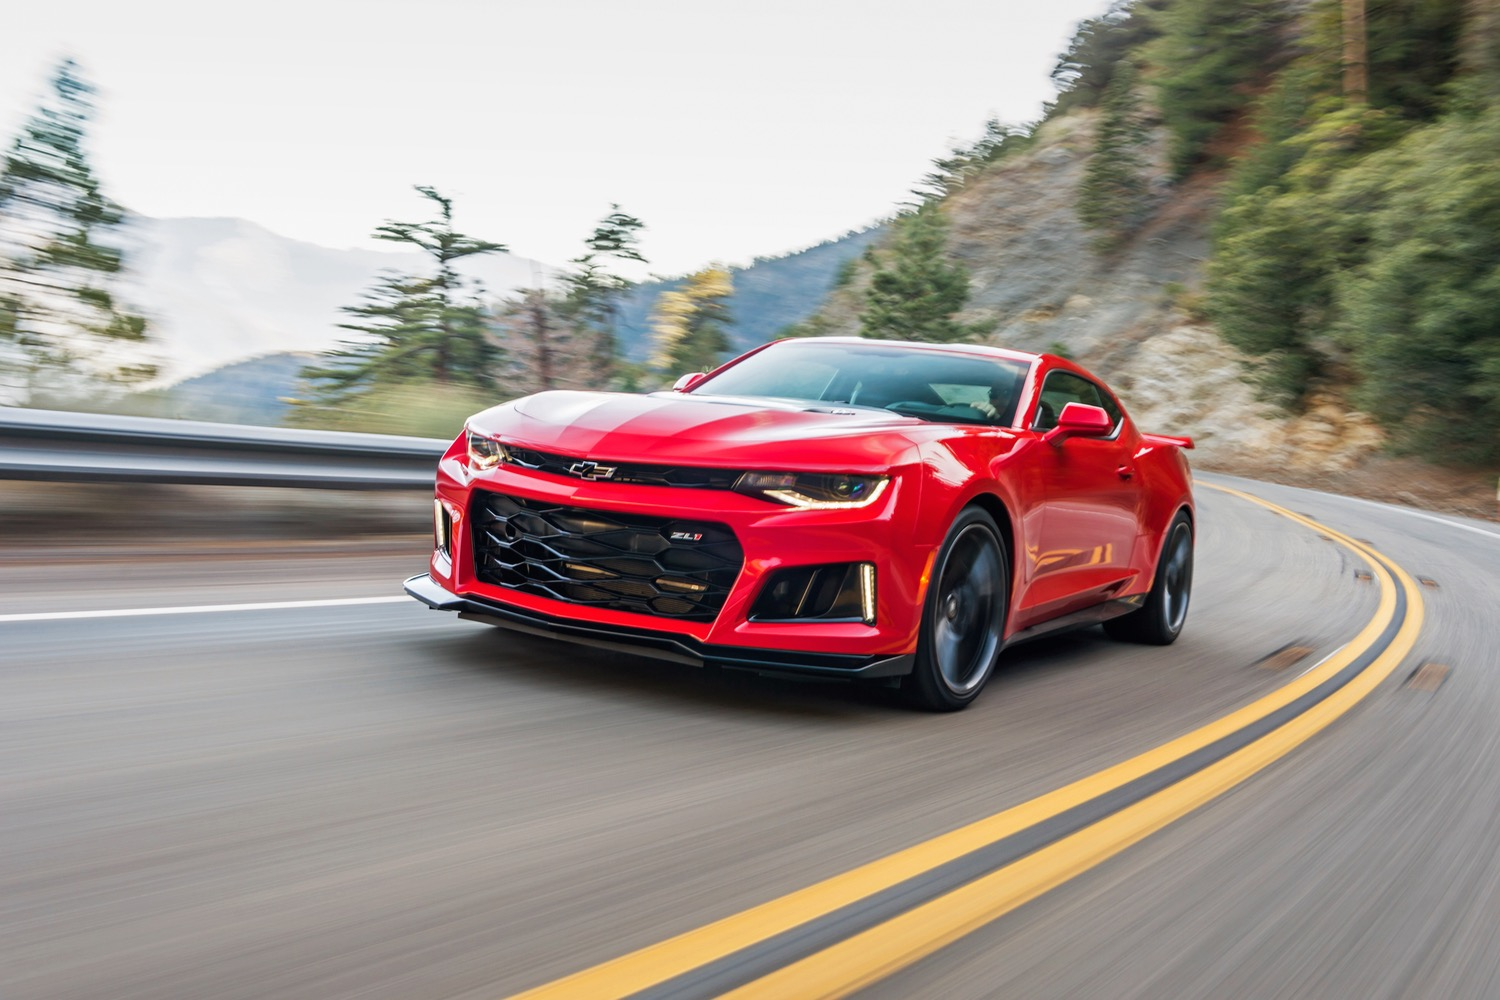 2017 Chevrolet Camaro Zl1 Aims For 200 Mph And Almost